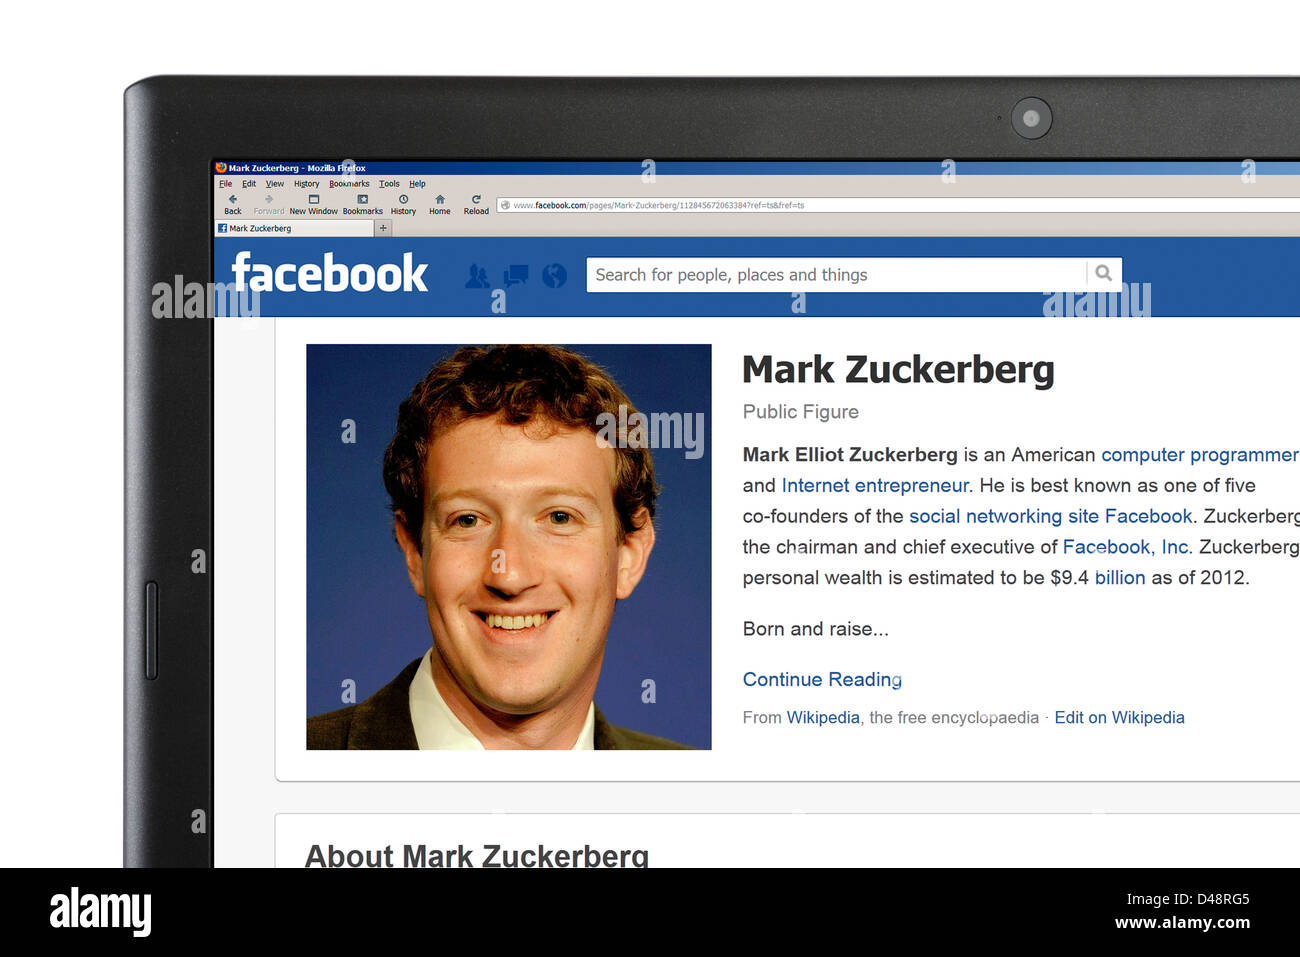 The Facebook profile of Mark Zuckerberg, one of the company's founders, viewed on a laptop computer - Stock Image